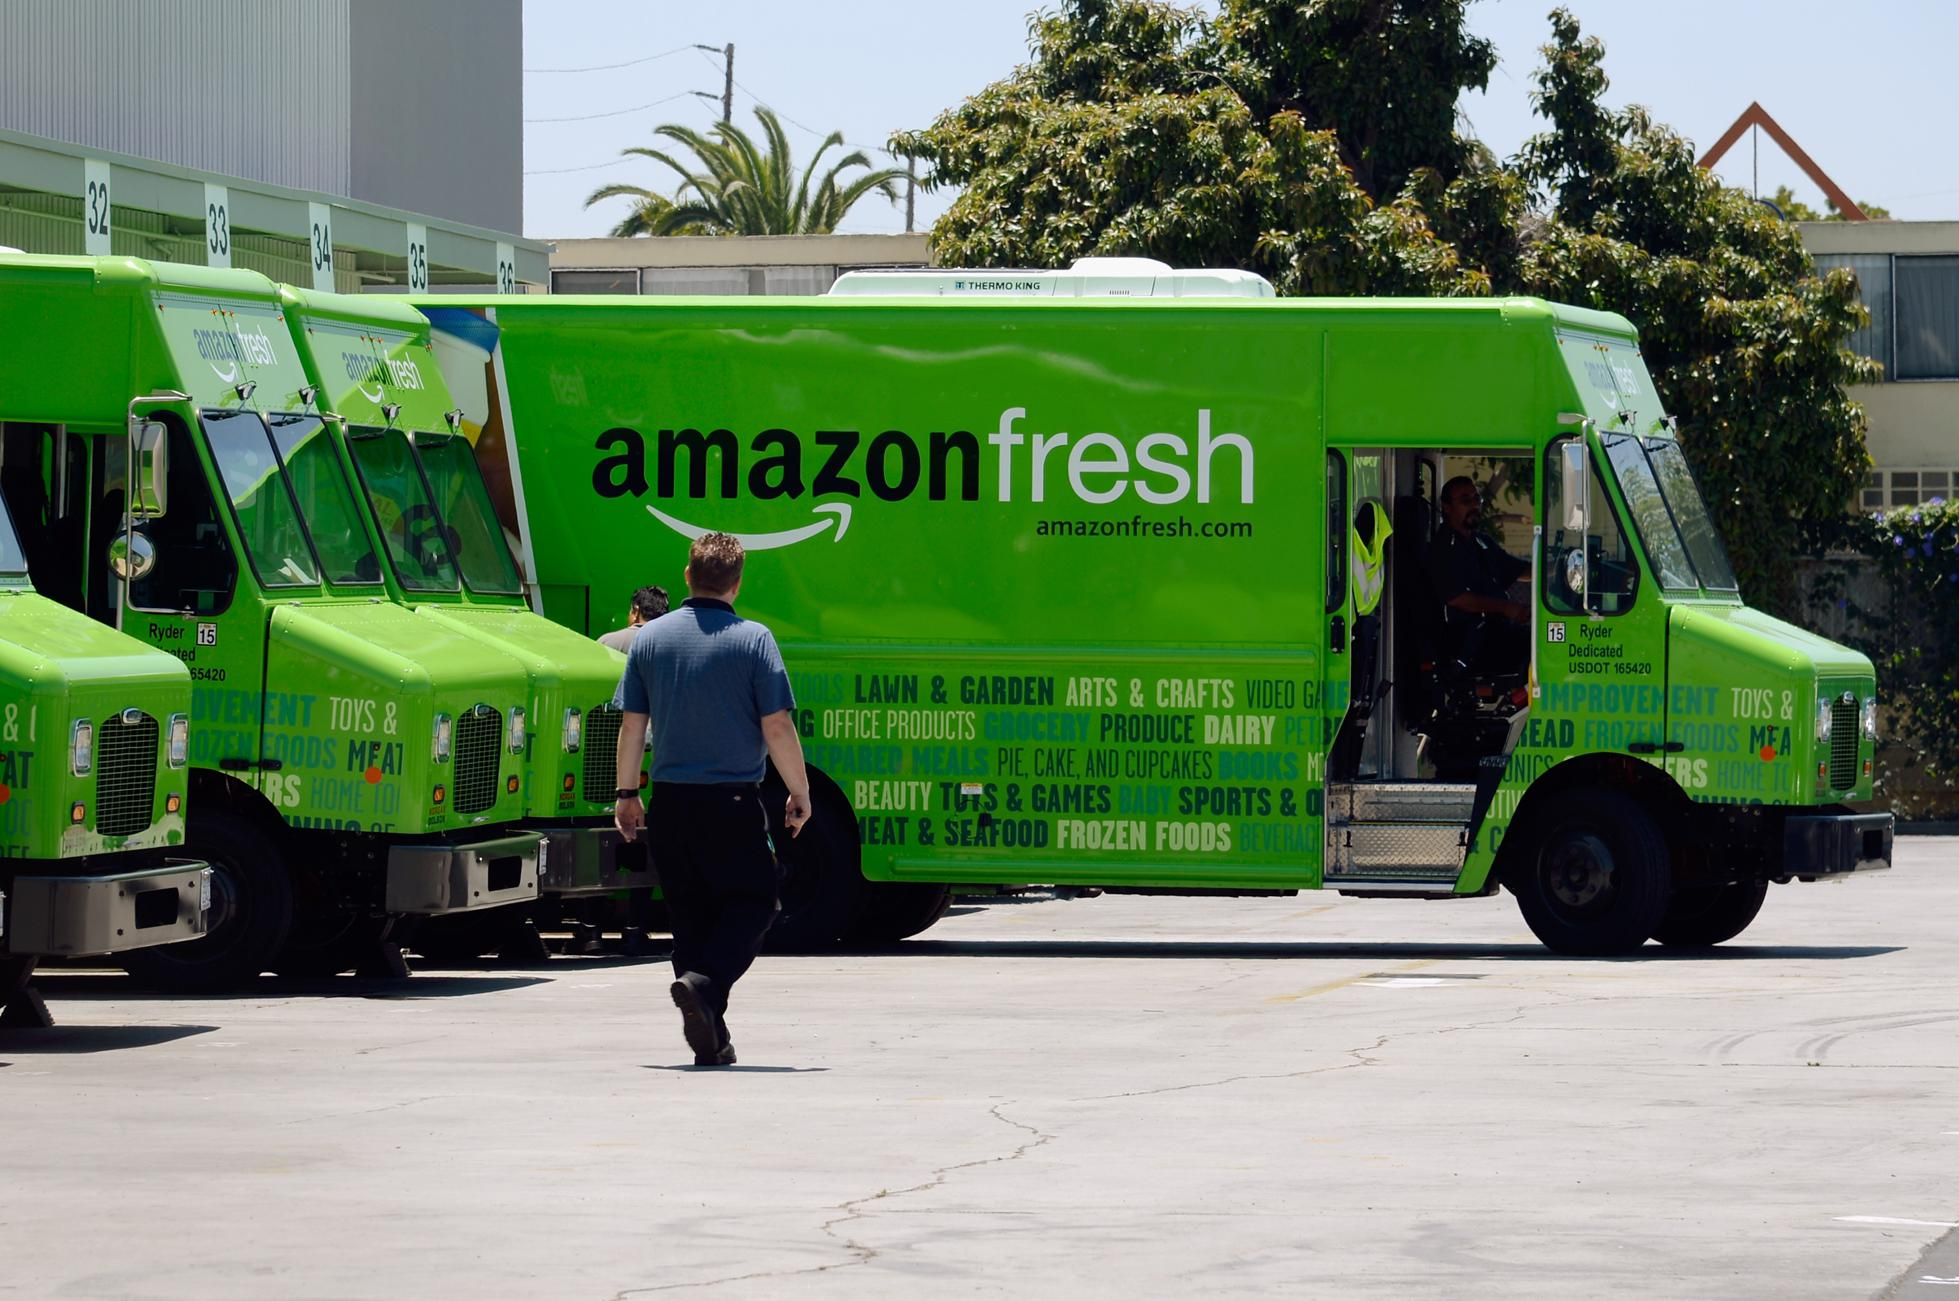 Amazon Expands Grocery Delivery Service To Los Angeles Area